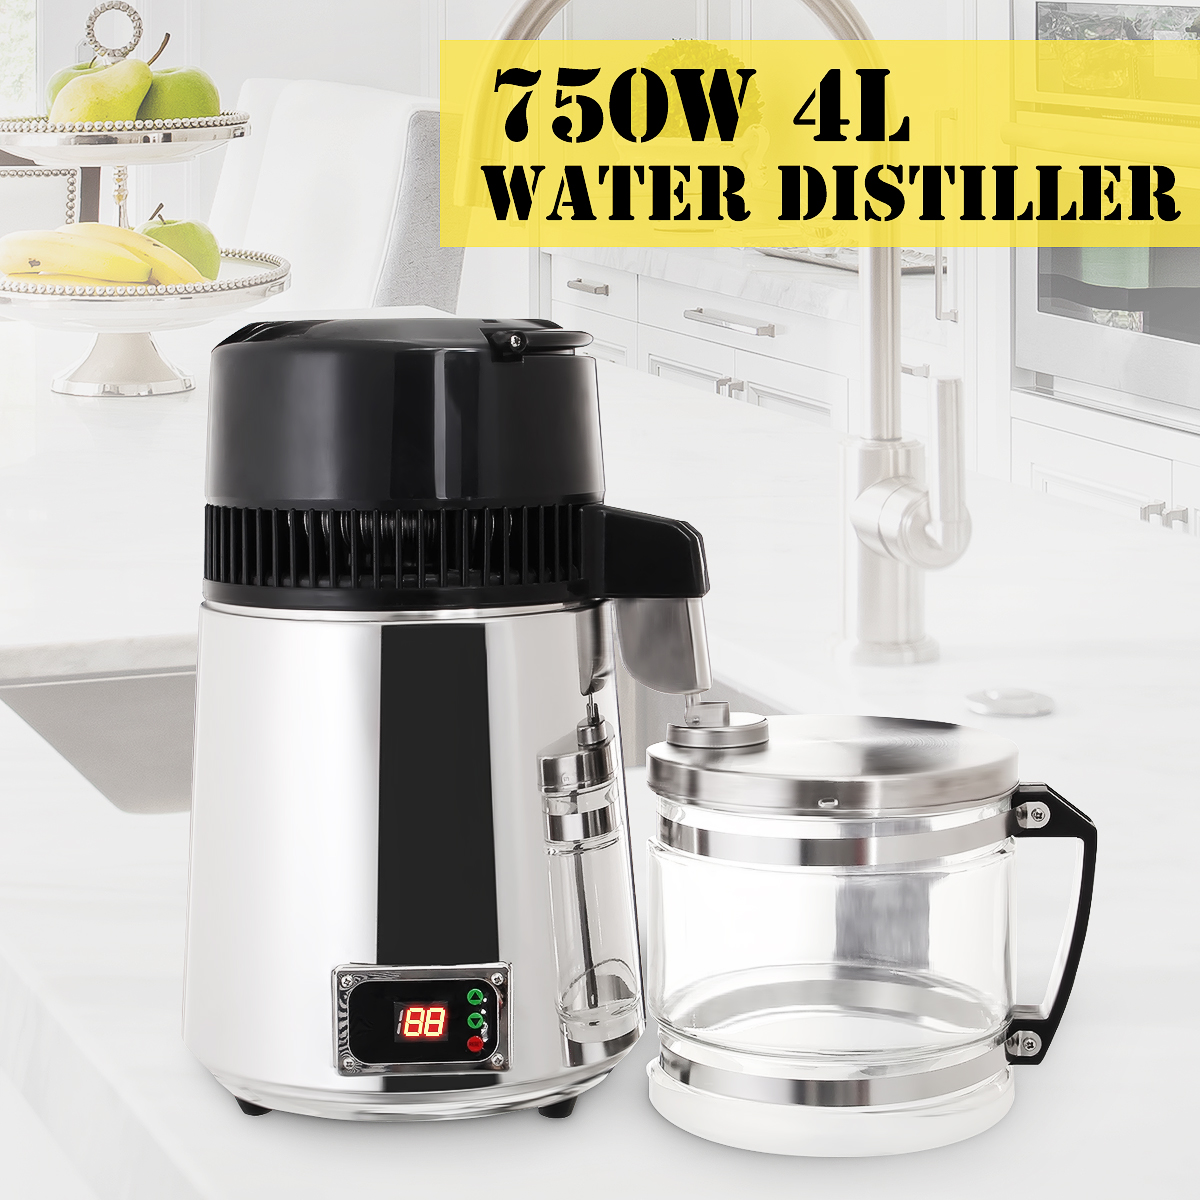 4L Pure Water Filters Distiller Electric Stainless Steel Household Water Purifier Container Filter Distilled Water Machine dmwd household water distilled machine pure water distiller filter electric distillation purifier stainless steel 110v 220v 4l